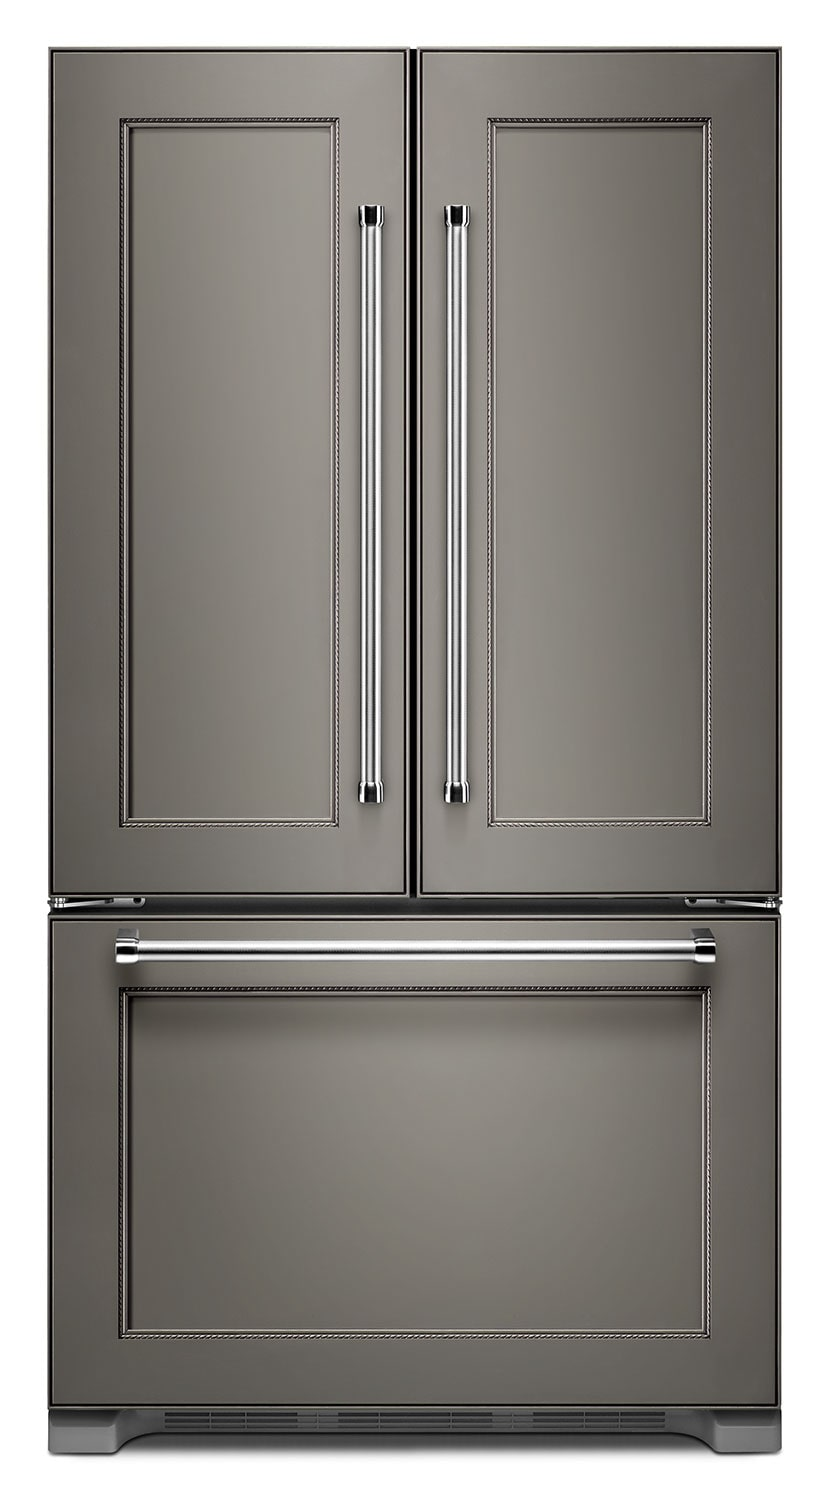 KitchenAid 22 Cu. Ft. French Door Refrigerator with Interior Dispenser - Panel-Ready